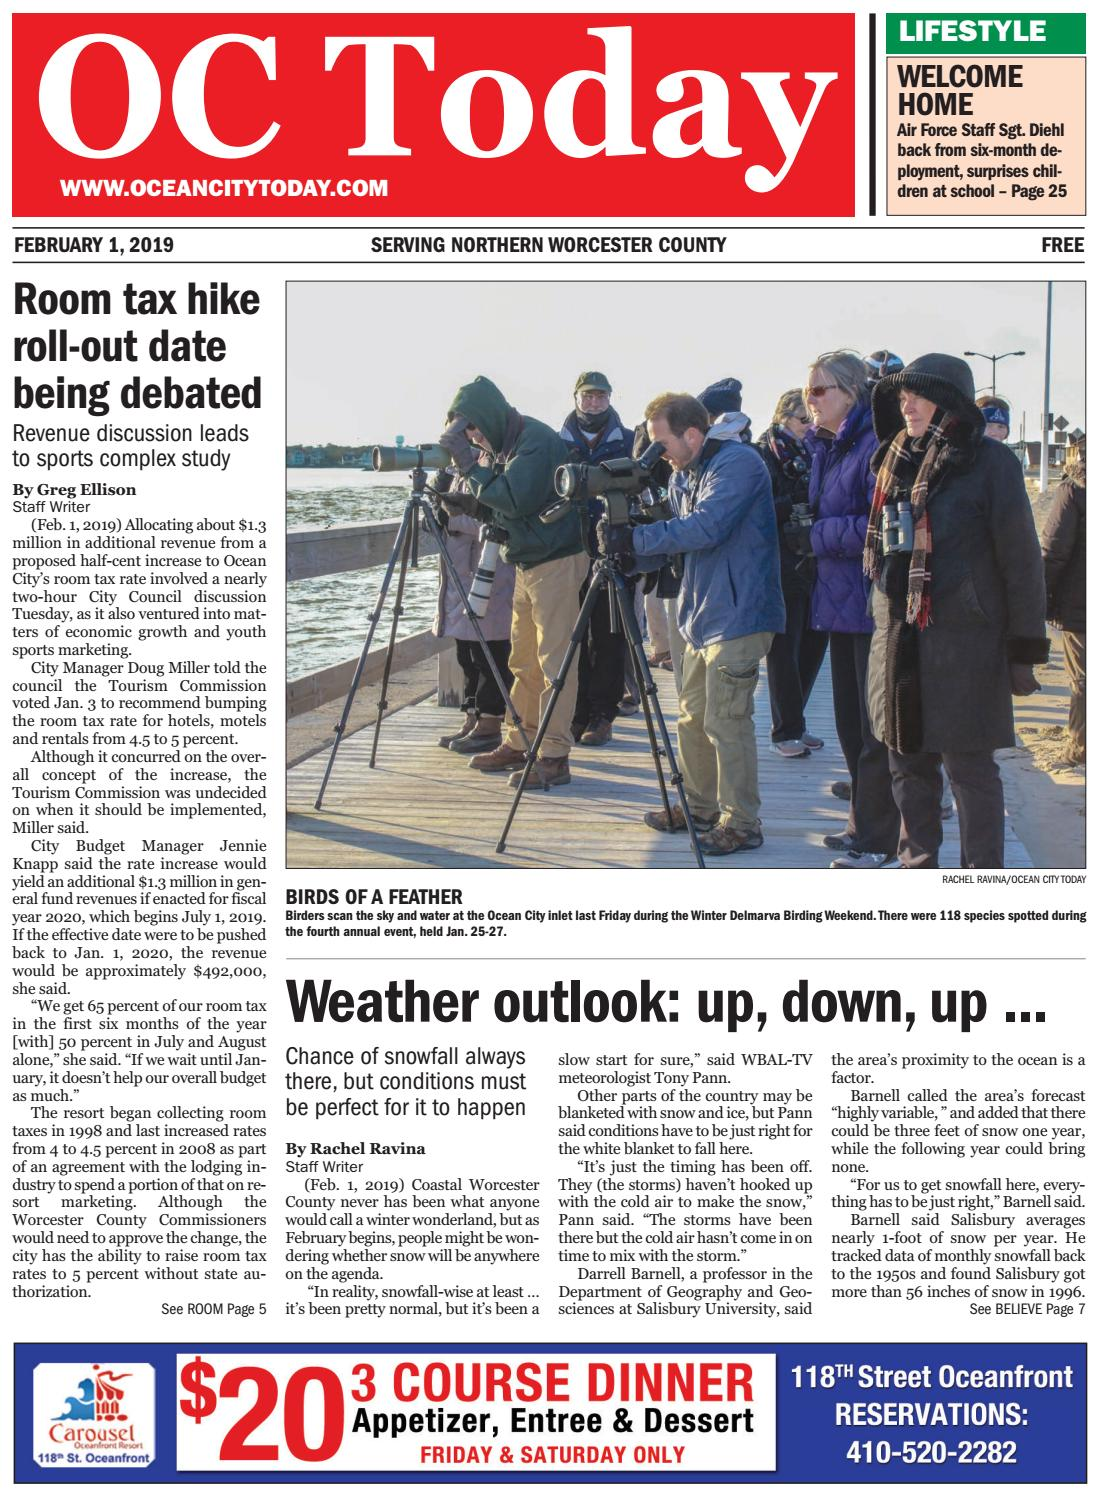 2/1/19 Ocean City Today by ocean city today - issuu